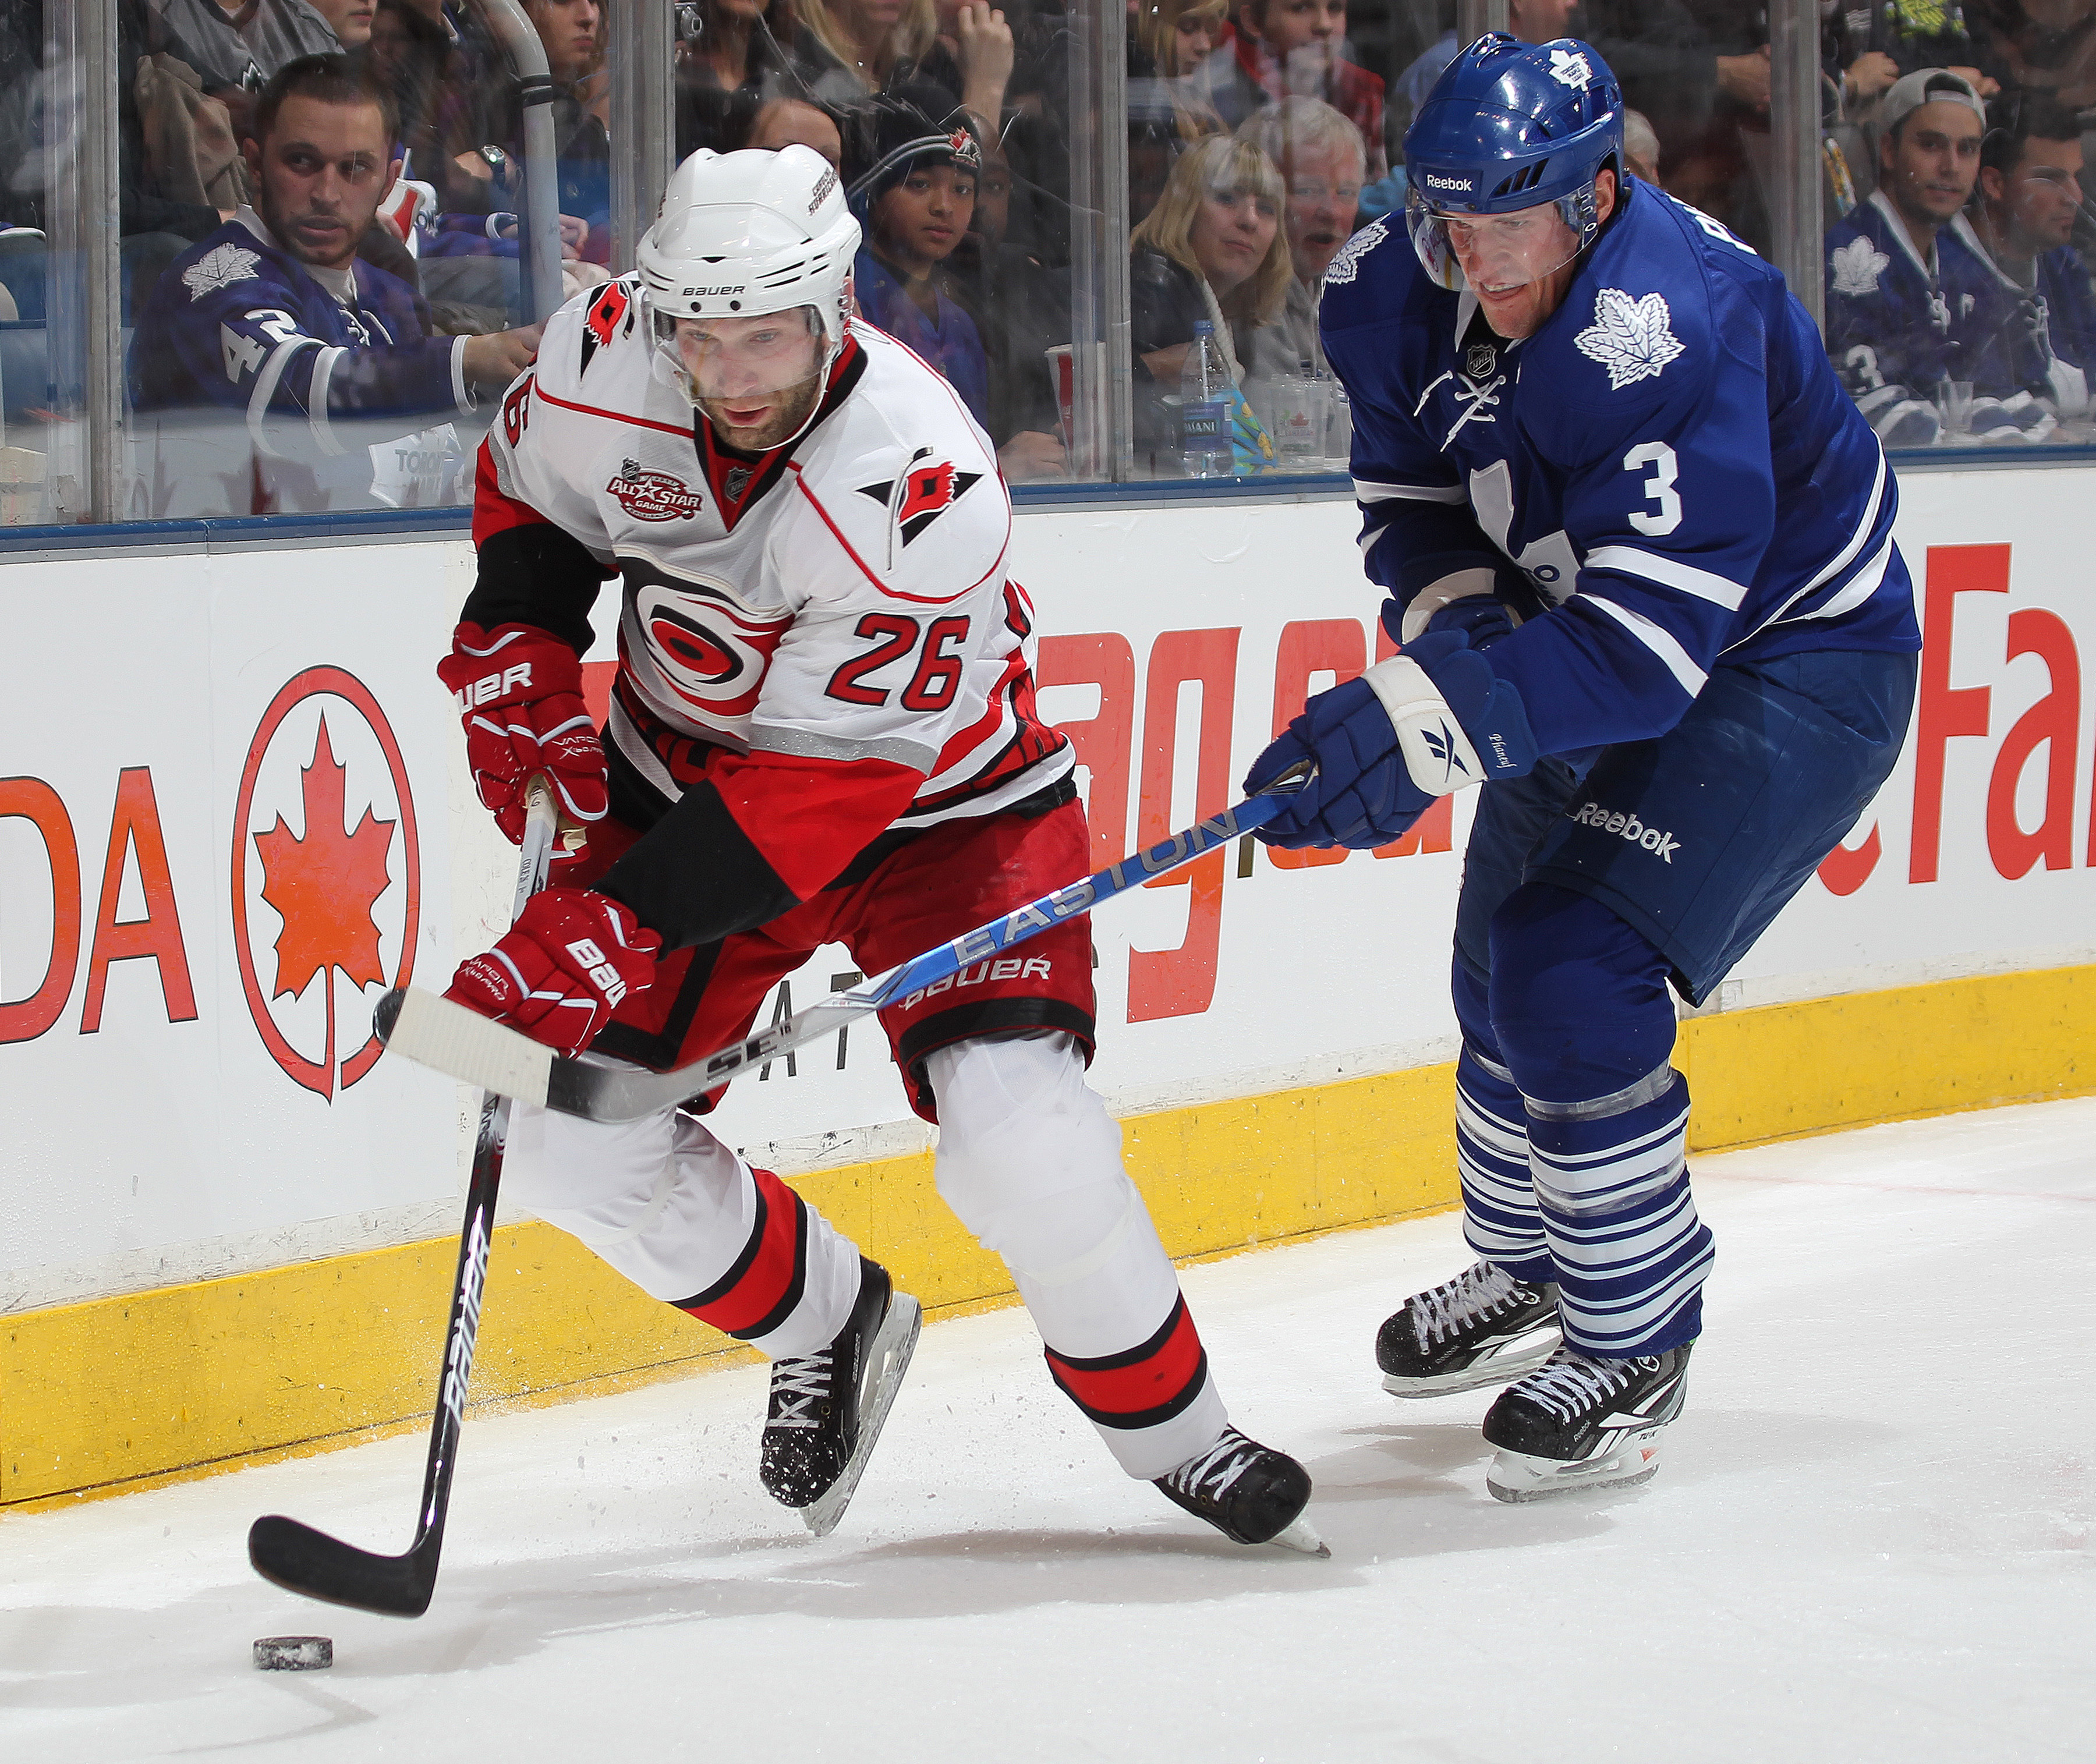 TORONTO, ON - DECEMBER 28:  Erik Cole #26 of the Carolina Hurricanes skates away from the check of Dion Phaneuf #3 of the Toronto Maple Leafs in a game on December 28, 2010 at the Air Canada Centre in Toronto,Ontario. The Hurricanes defeated the Leafs 4-3